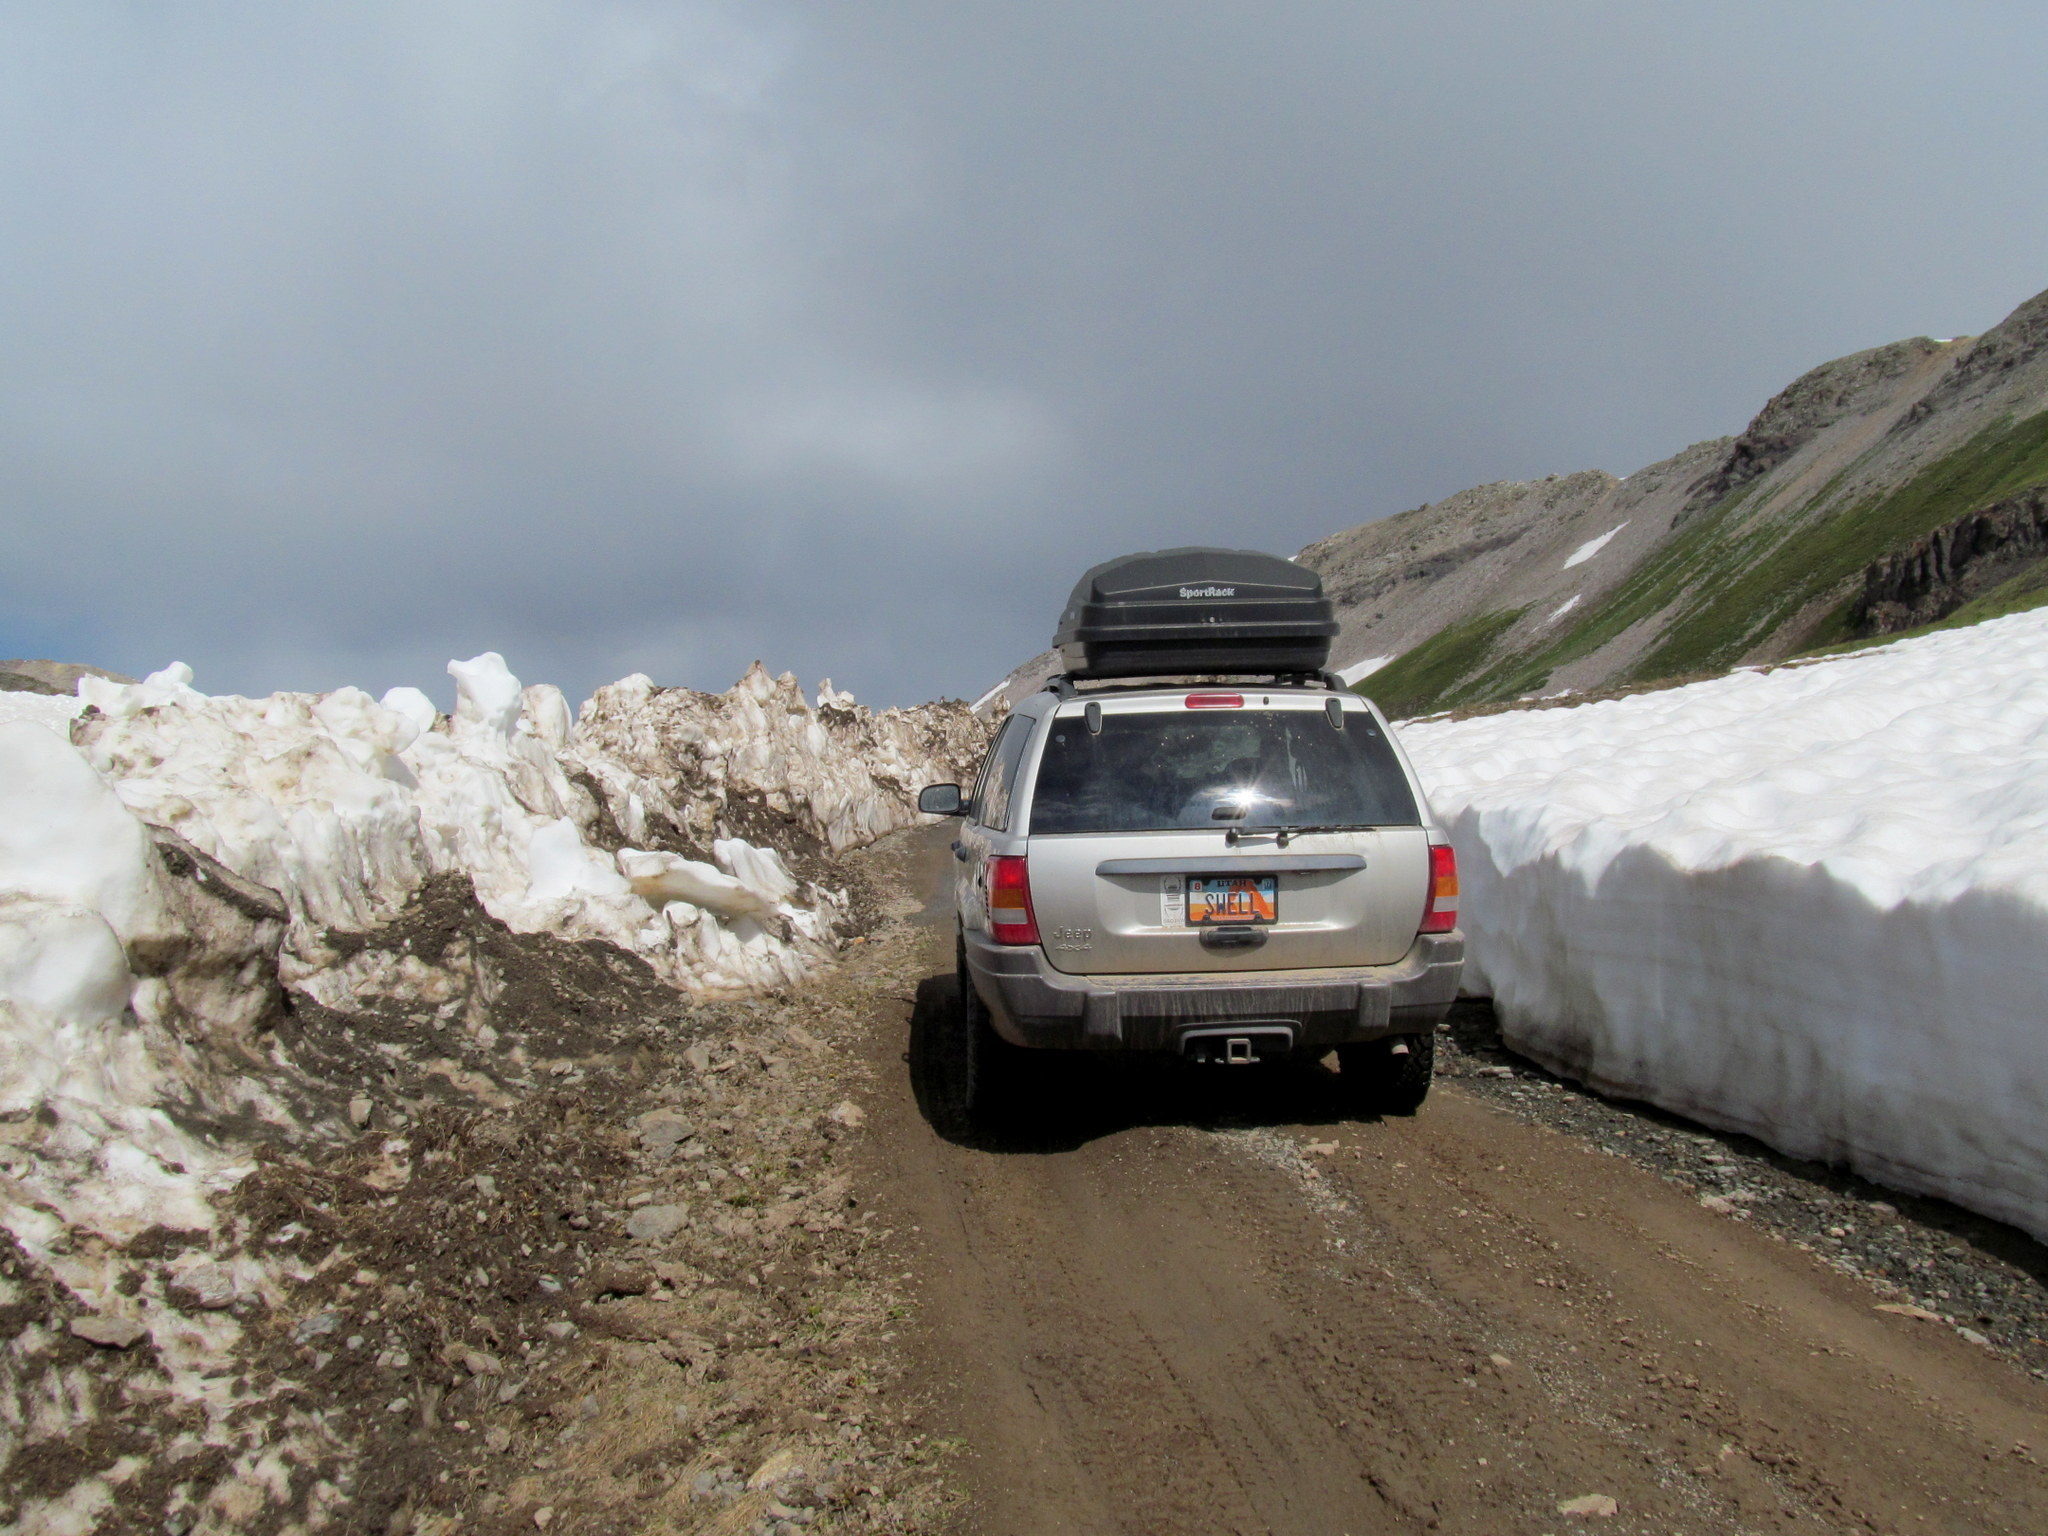 Photo: Crossing through a plowed snow drift